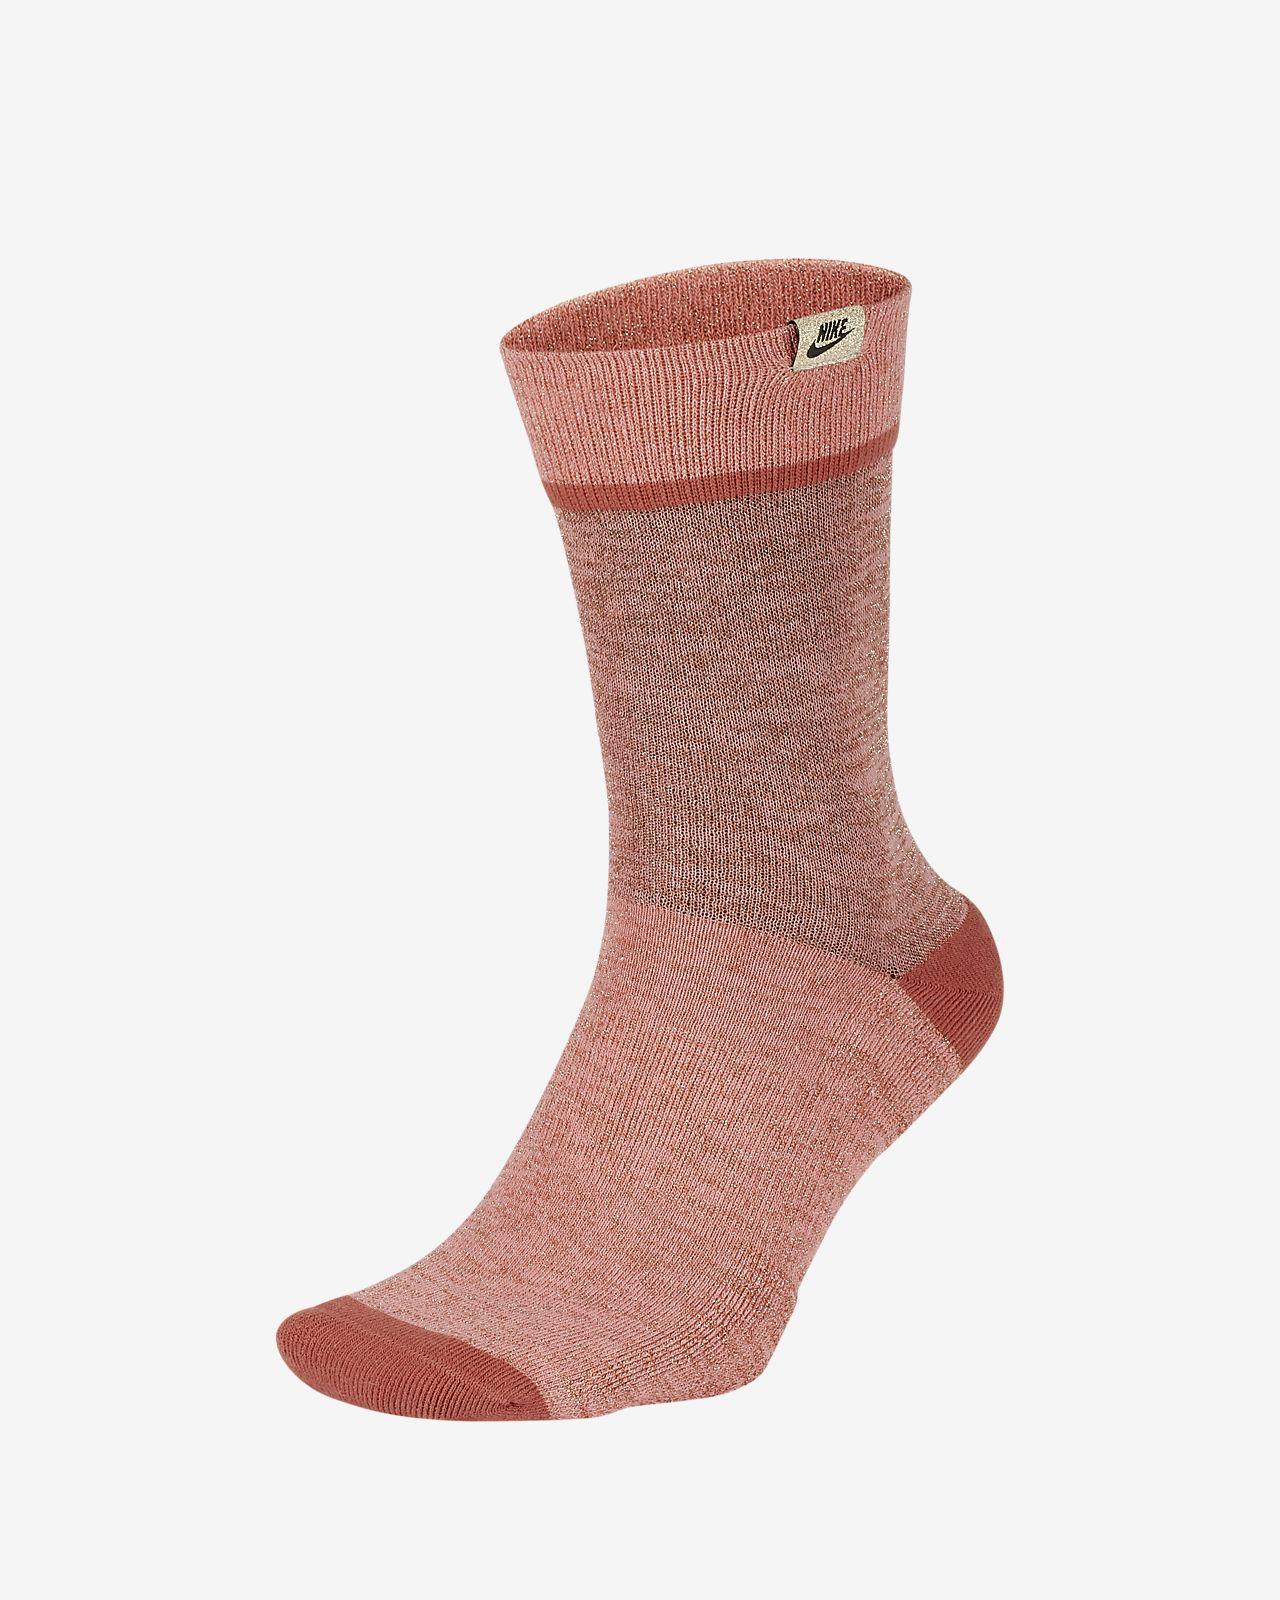 Nike SNEAKR Sox Metallic Crew Socks